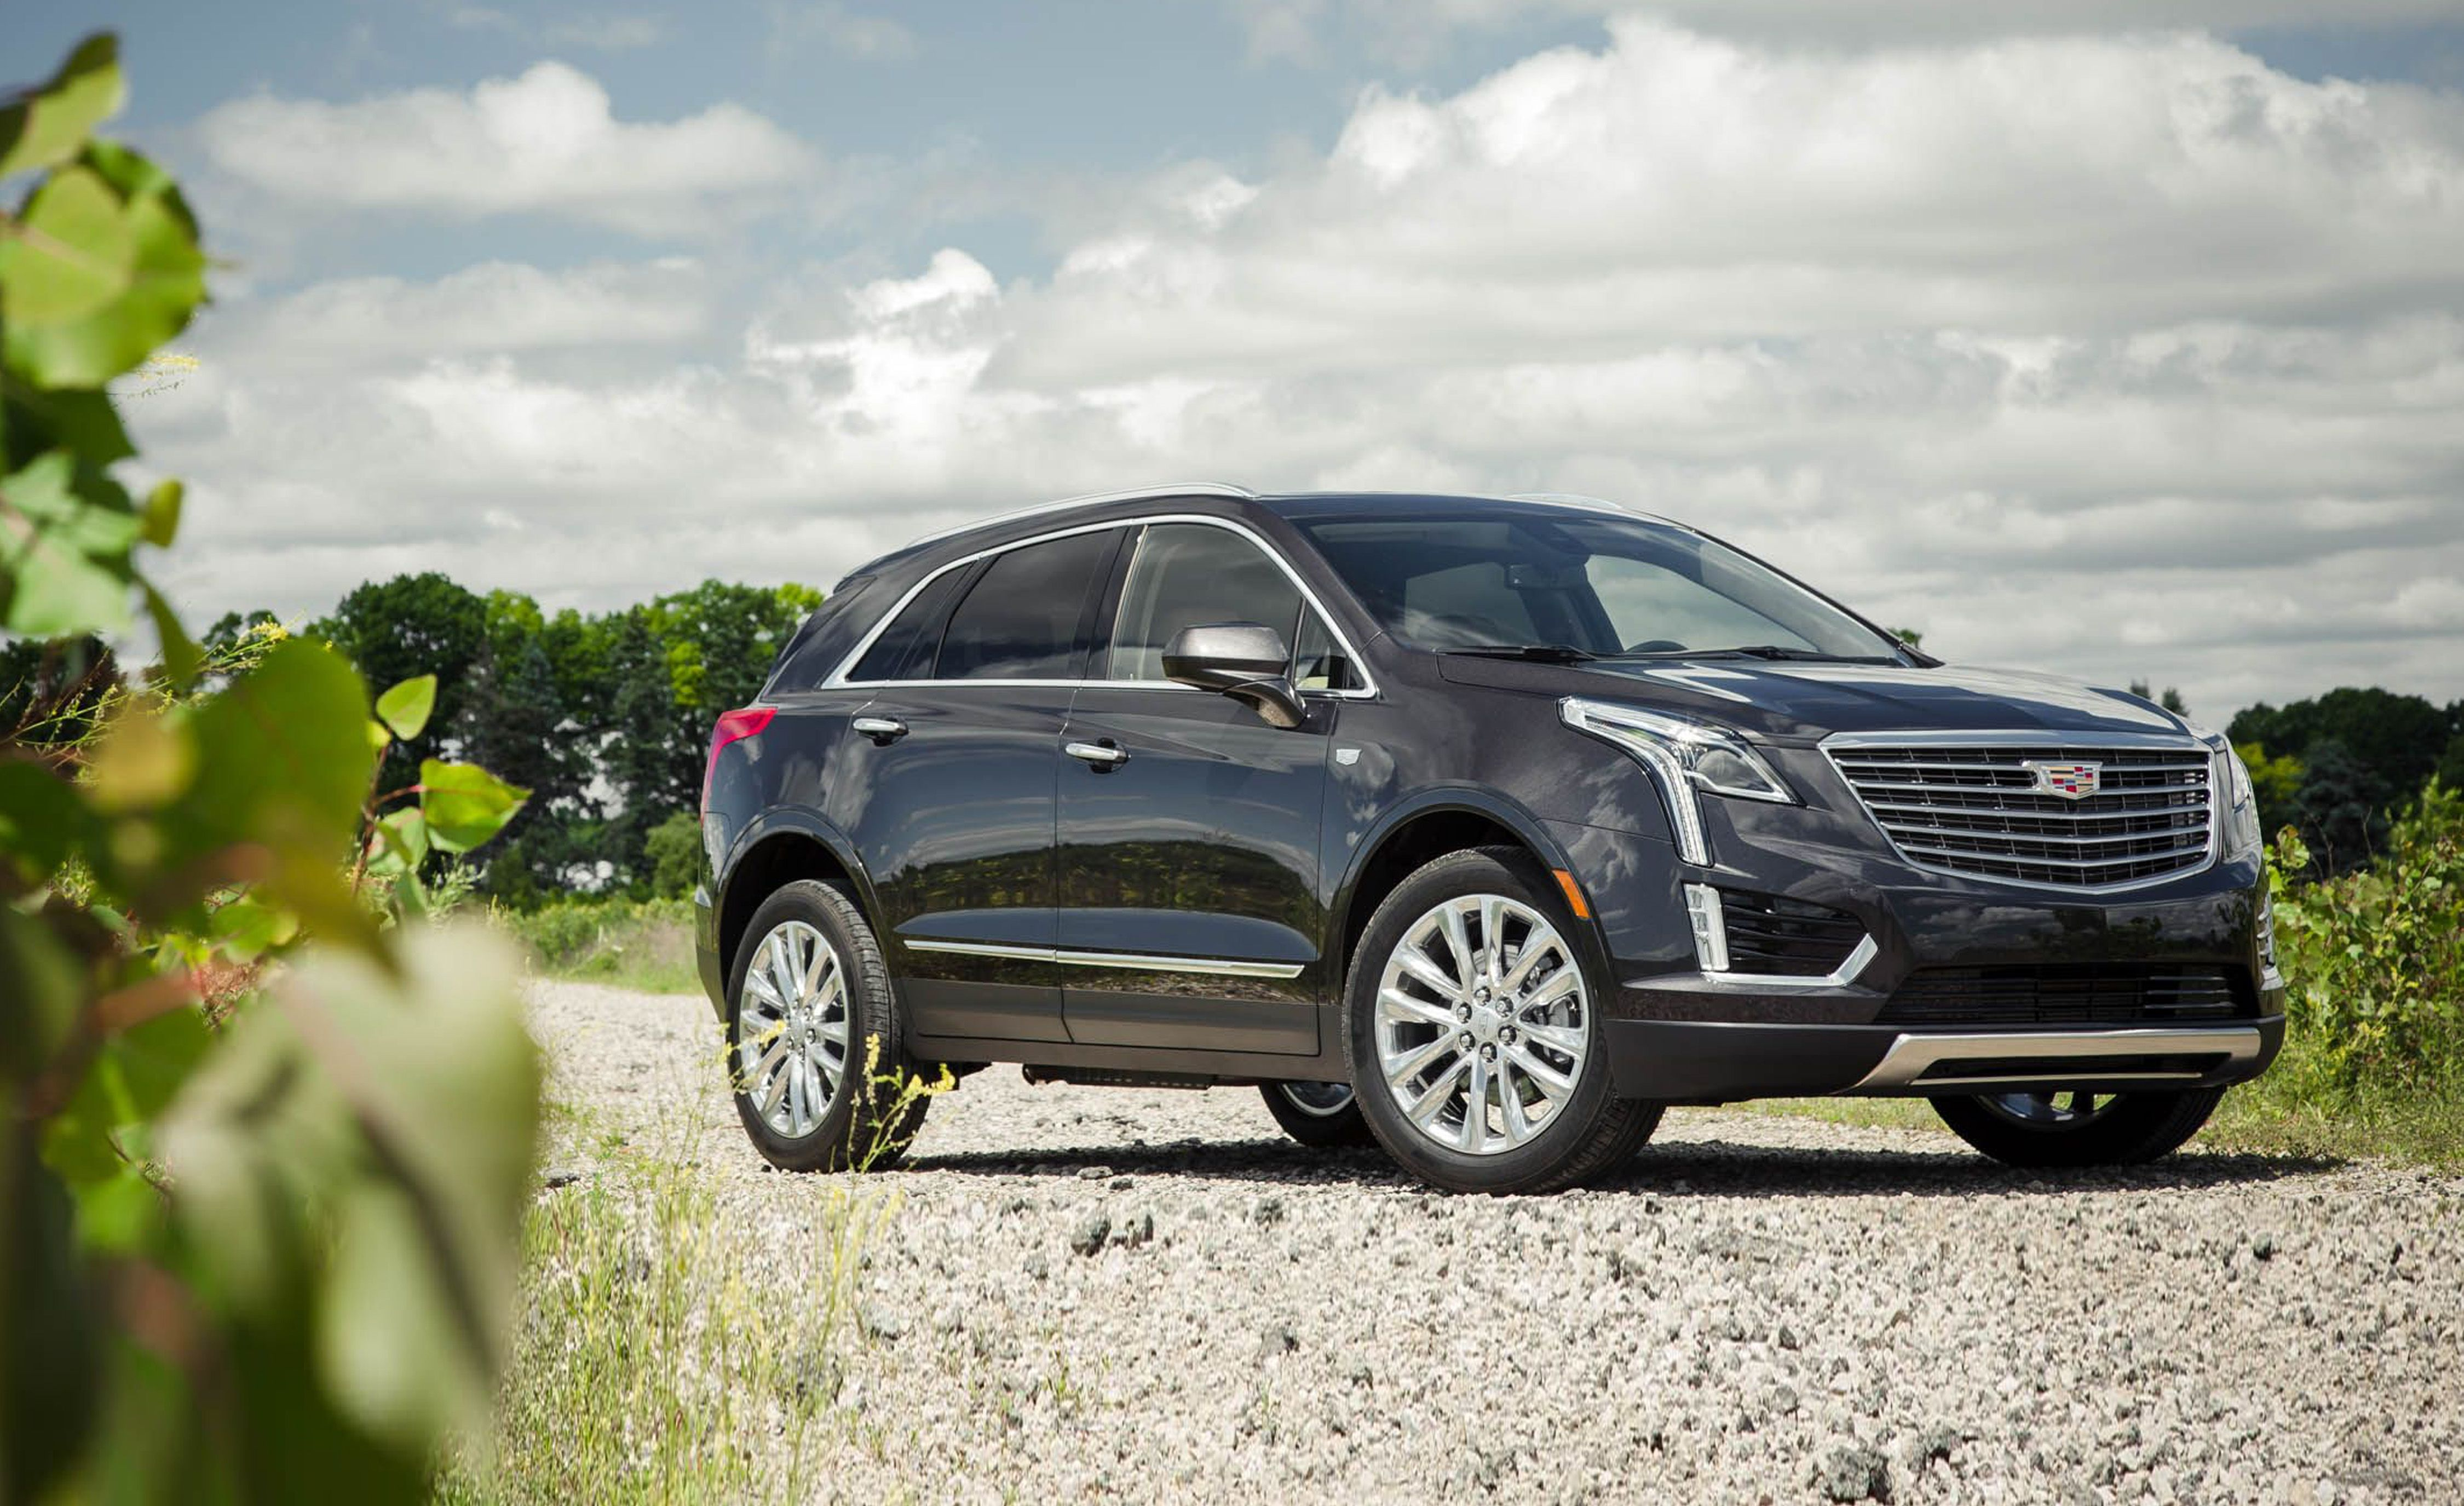 2020 Cadillac Xt5 Review Interior Price Specs >> 2019 Cadillac Xt5 Review Pricing And Specs